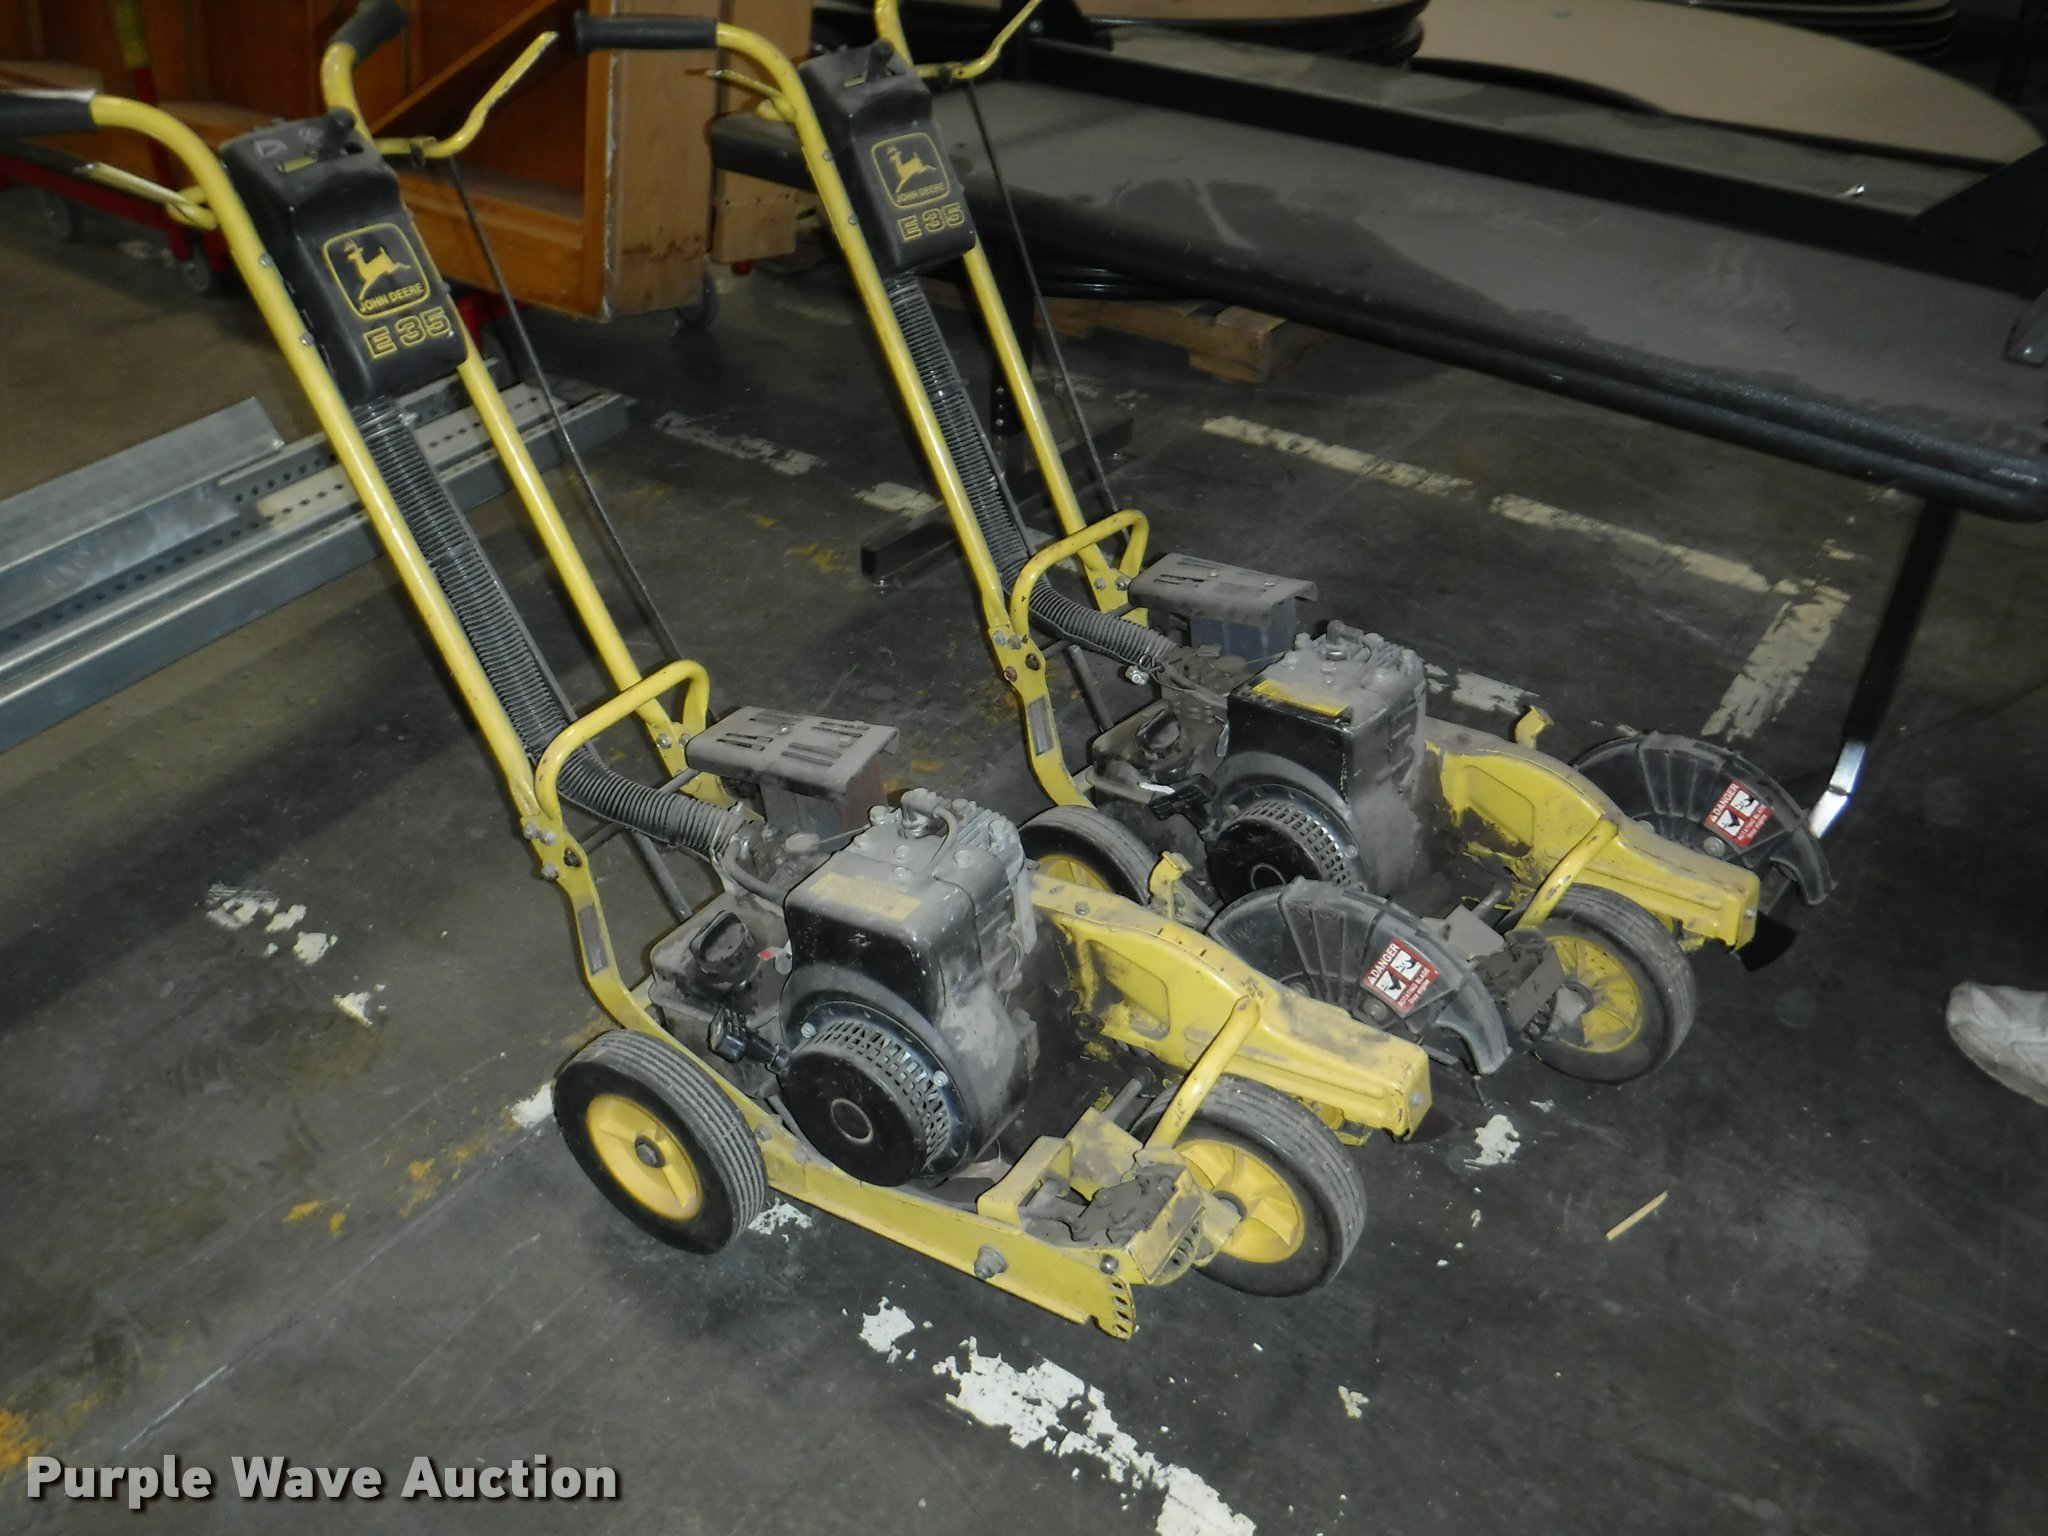 BY9174 image for item BY9174 (2) John Deere E35 lawn edgers